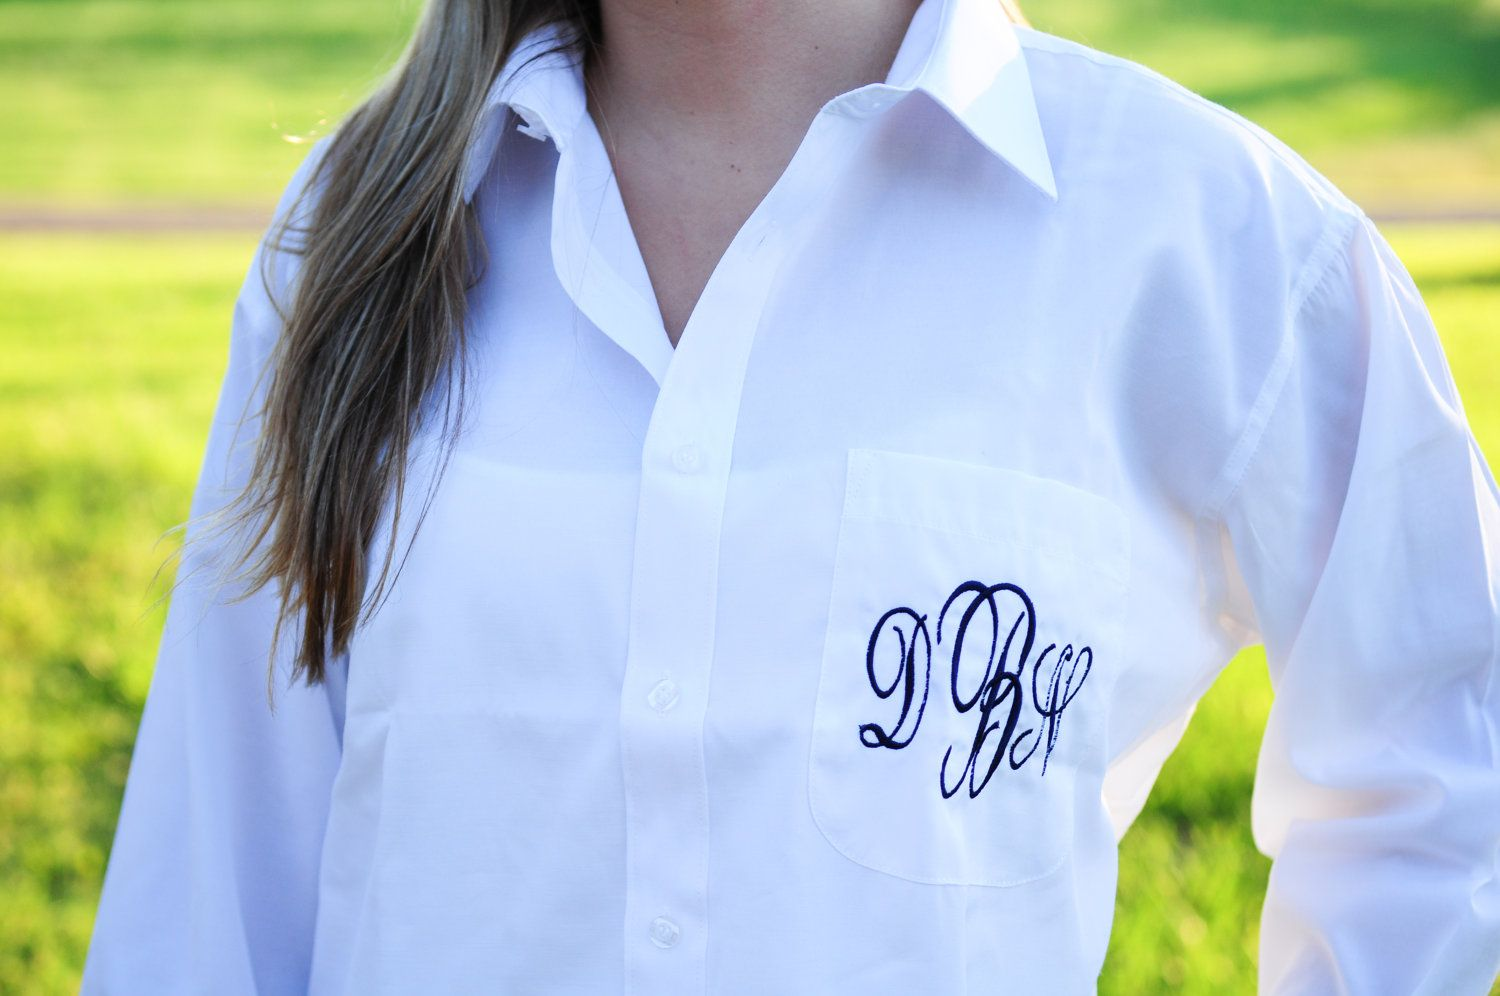 Bride Bridesmaids Oversized Monogrammed On Down Shirts 24 99 Via Etsy